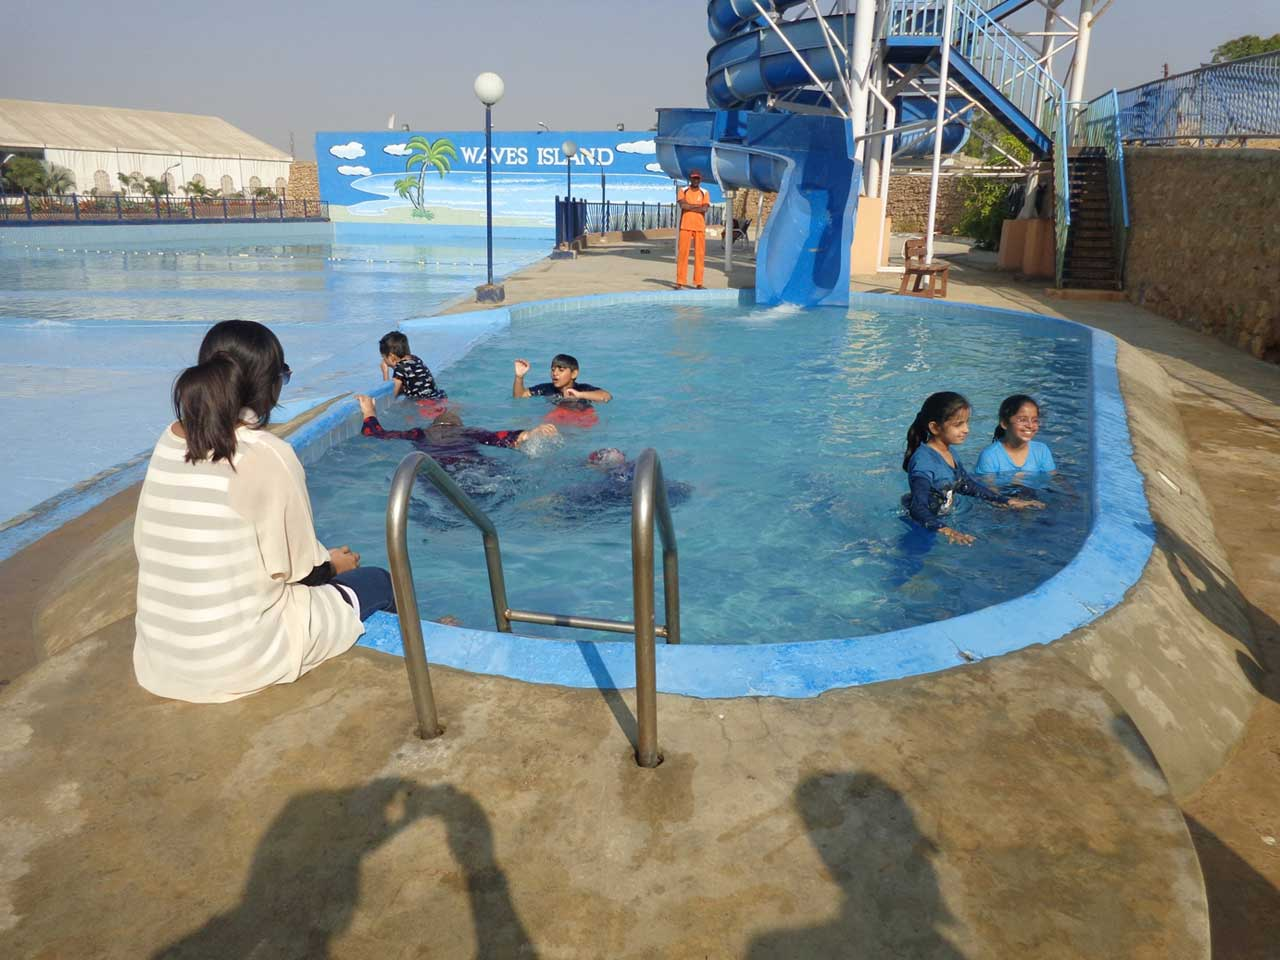 Kids are enjoying in the pool